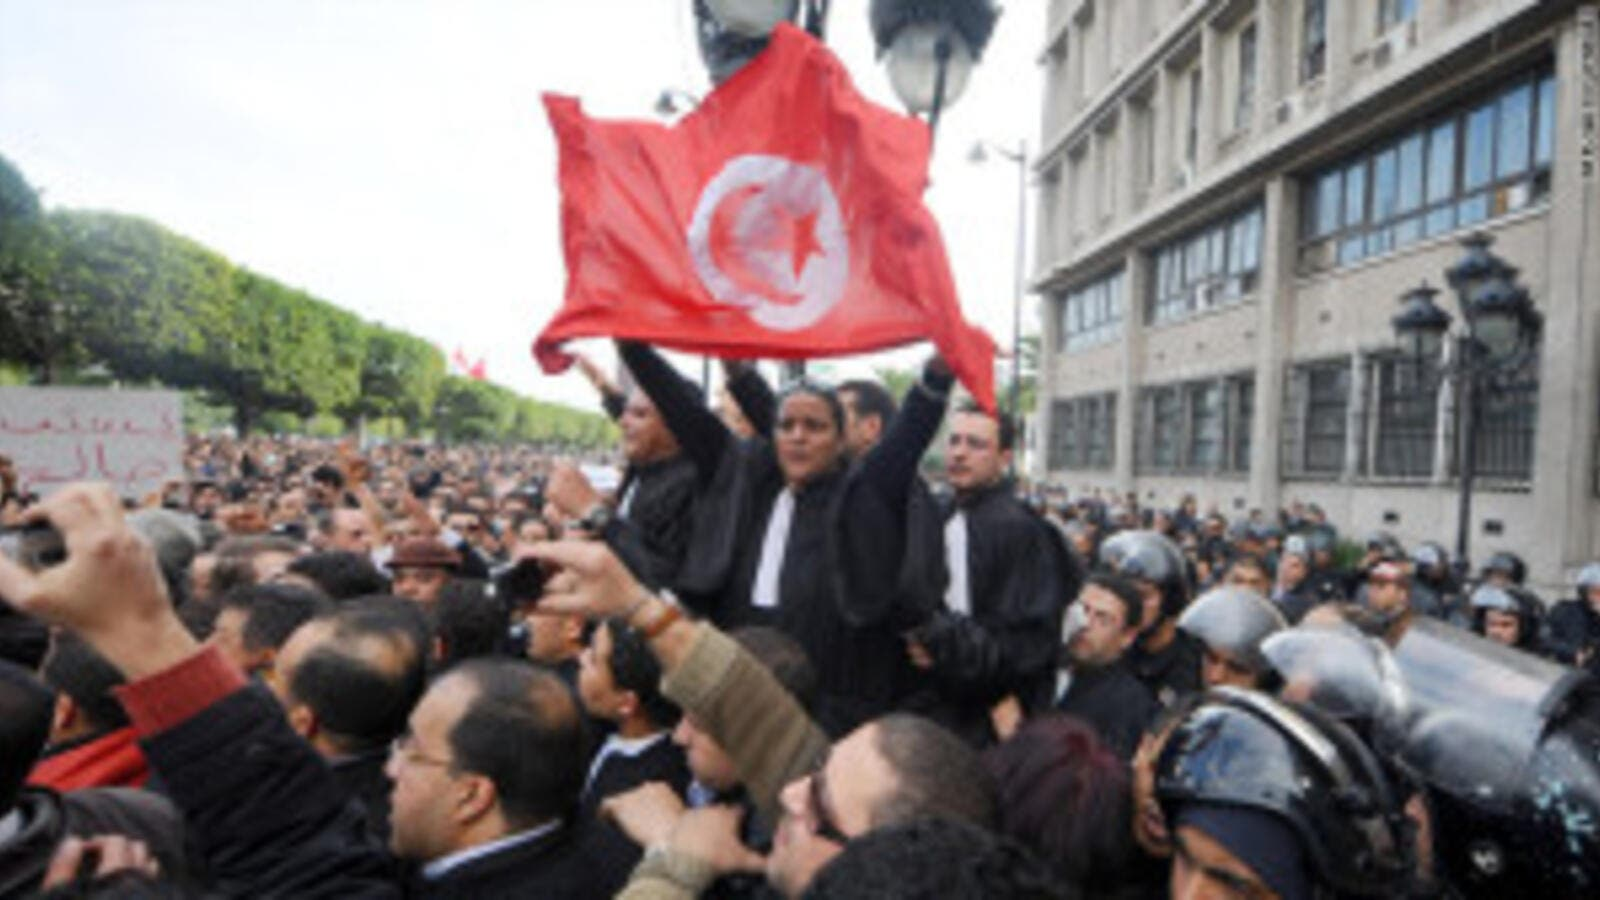 Protestors in Tunis called on the ruling Islamist Ennahda party to immediately resign Wednesday (Courtesy of AIM)